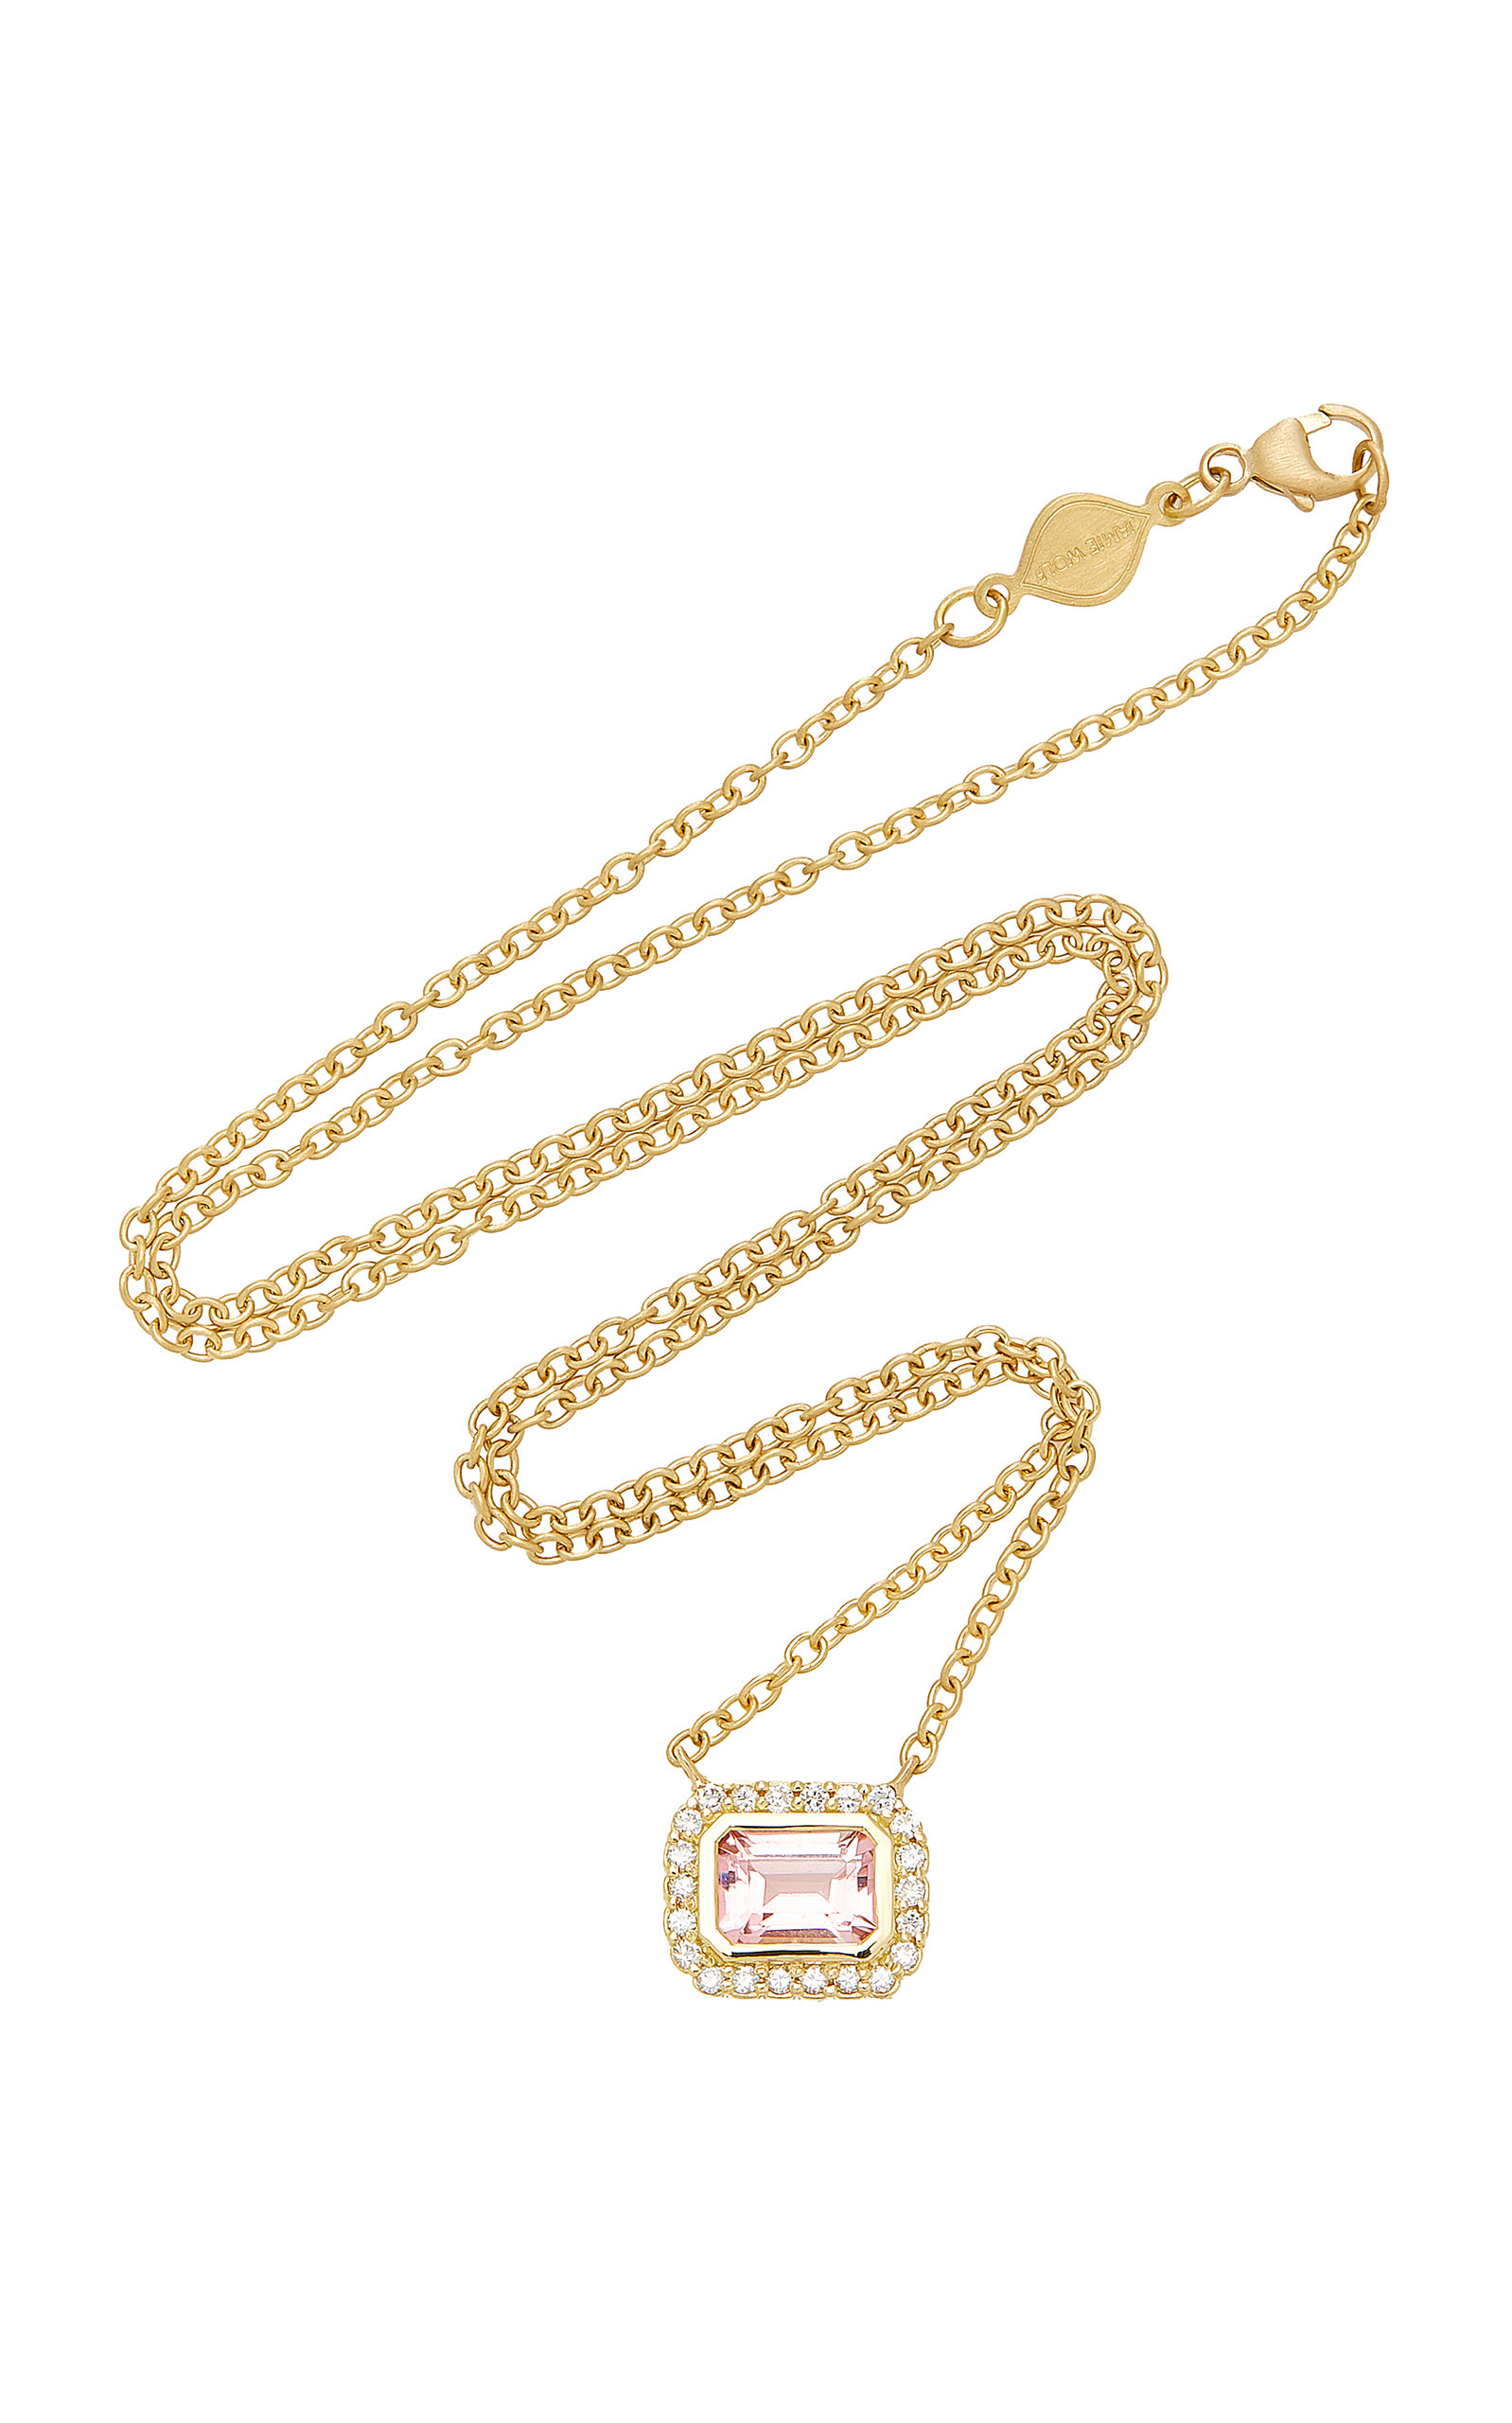 pink tourmaline shop betteridge angela jewellery pendant